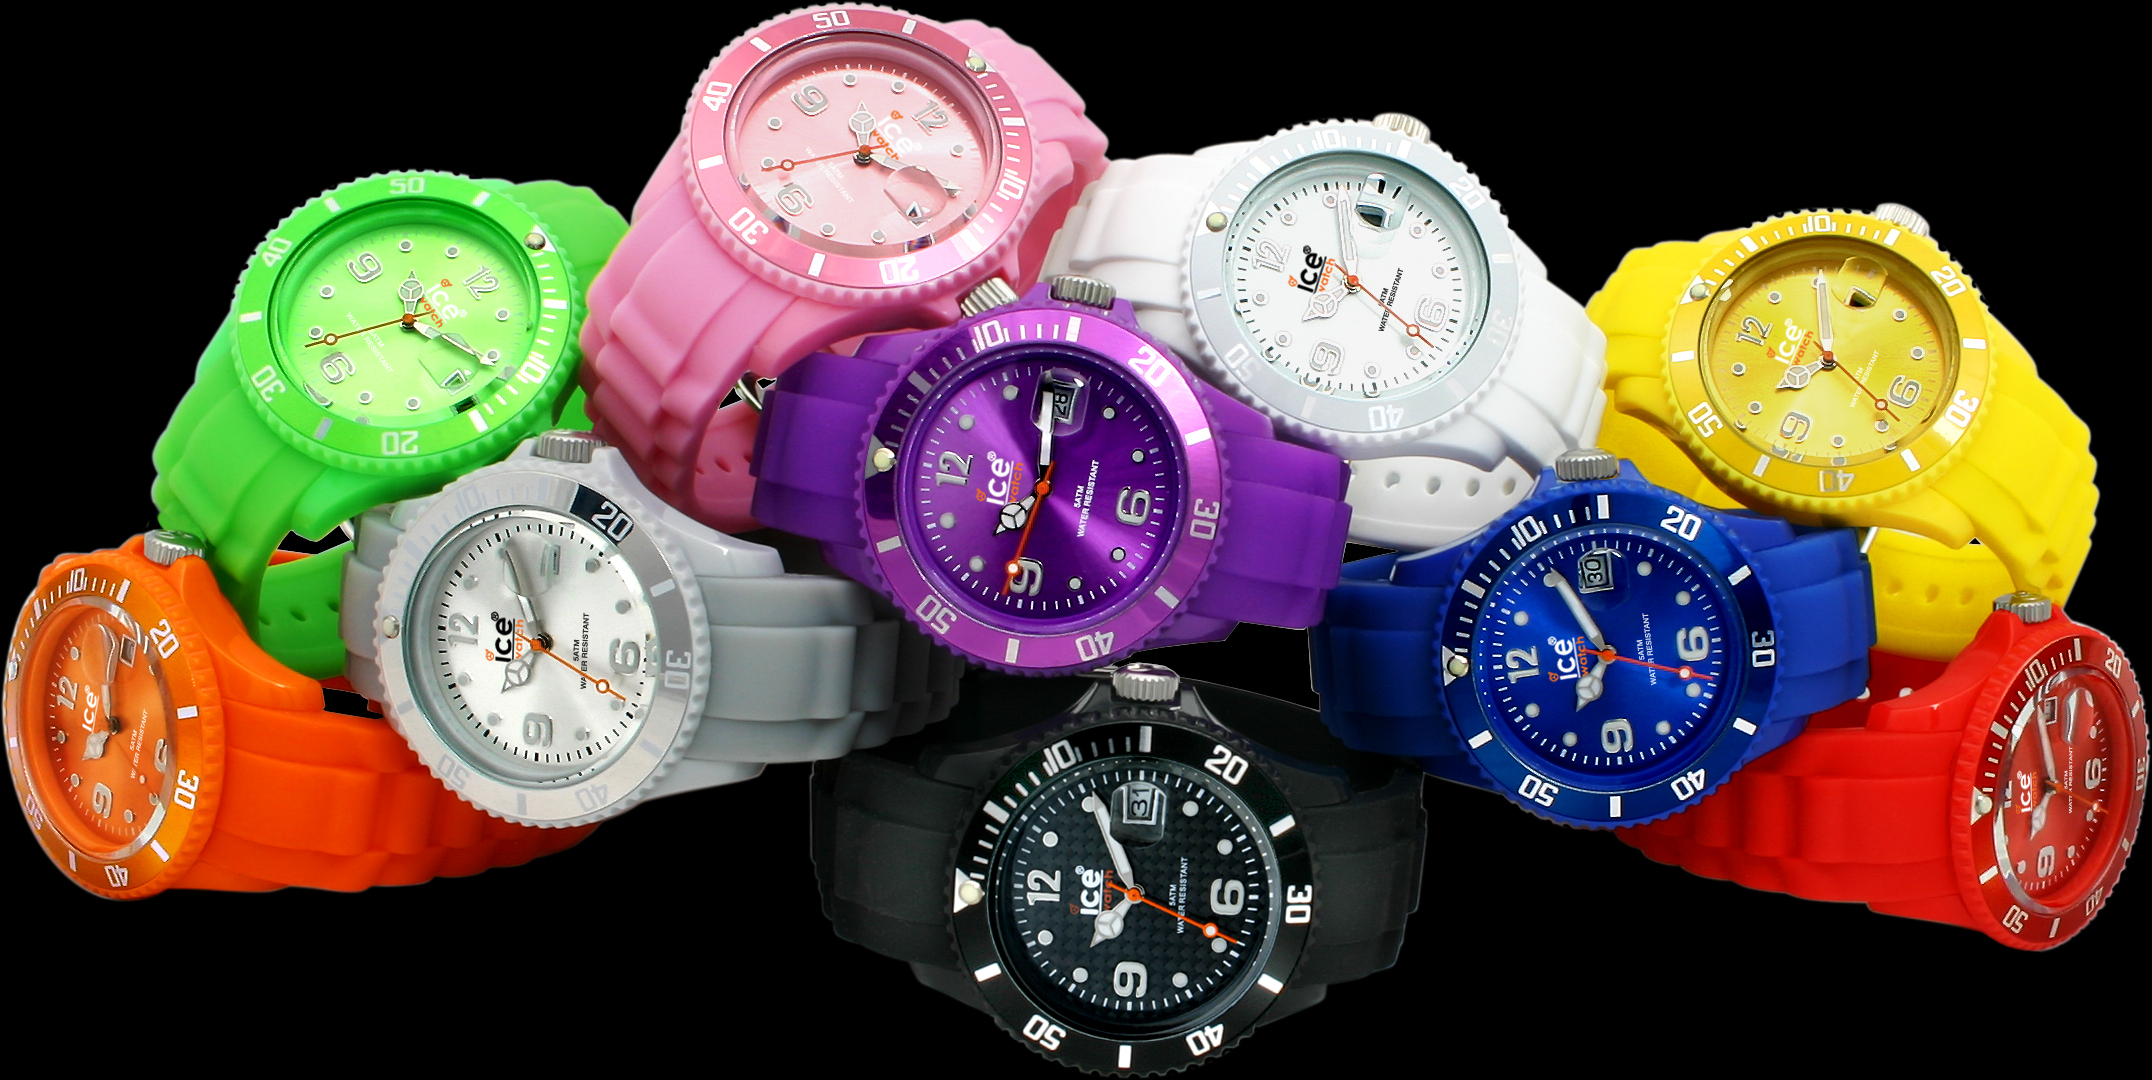 Ice Jelly Watches from Ice Watches